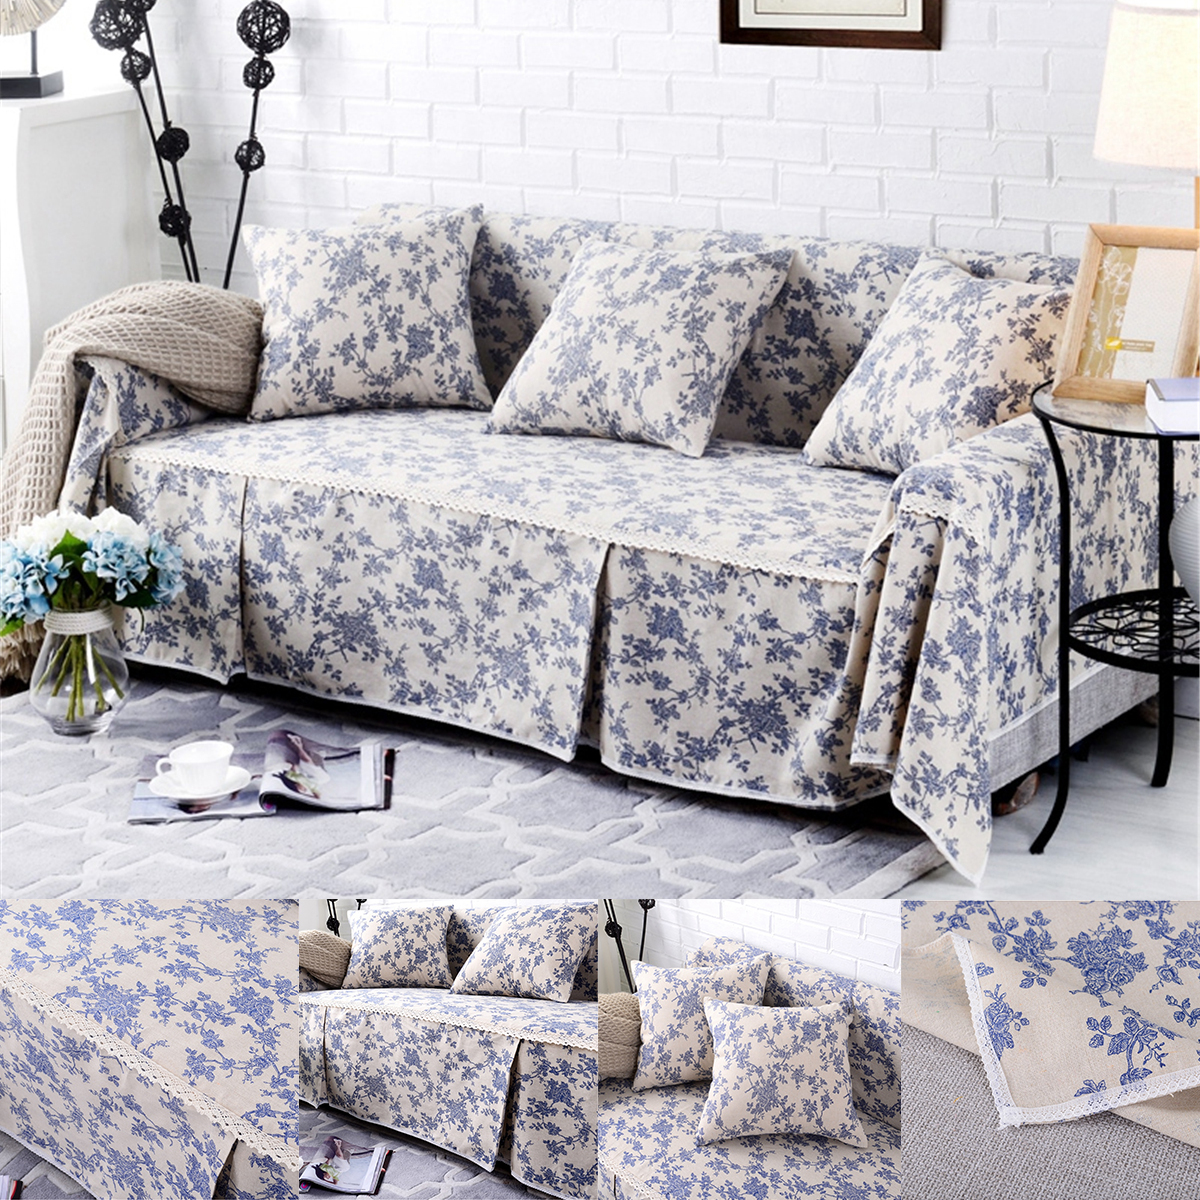 Details about 1 2 3 Seater Sofa Cover Cotton Linen Furniture Protector  Couch Towel